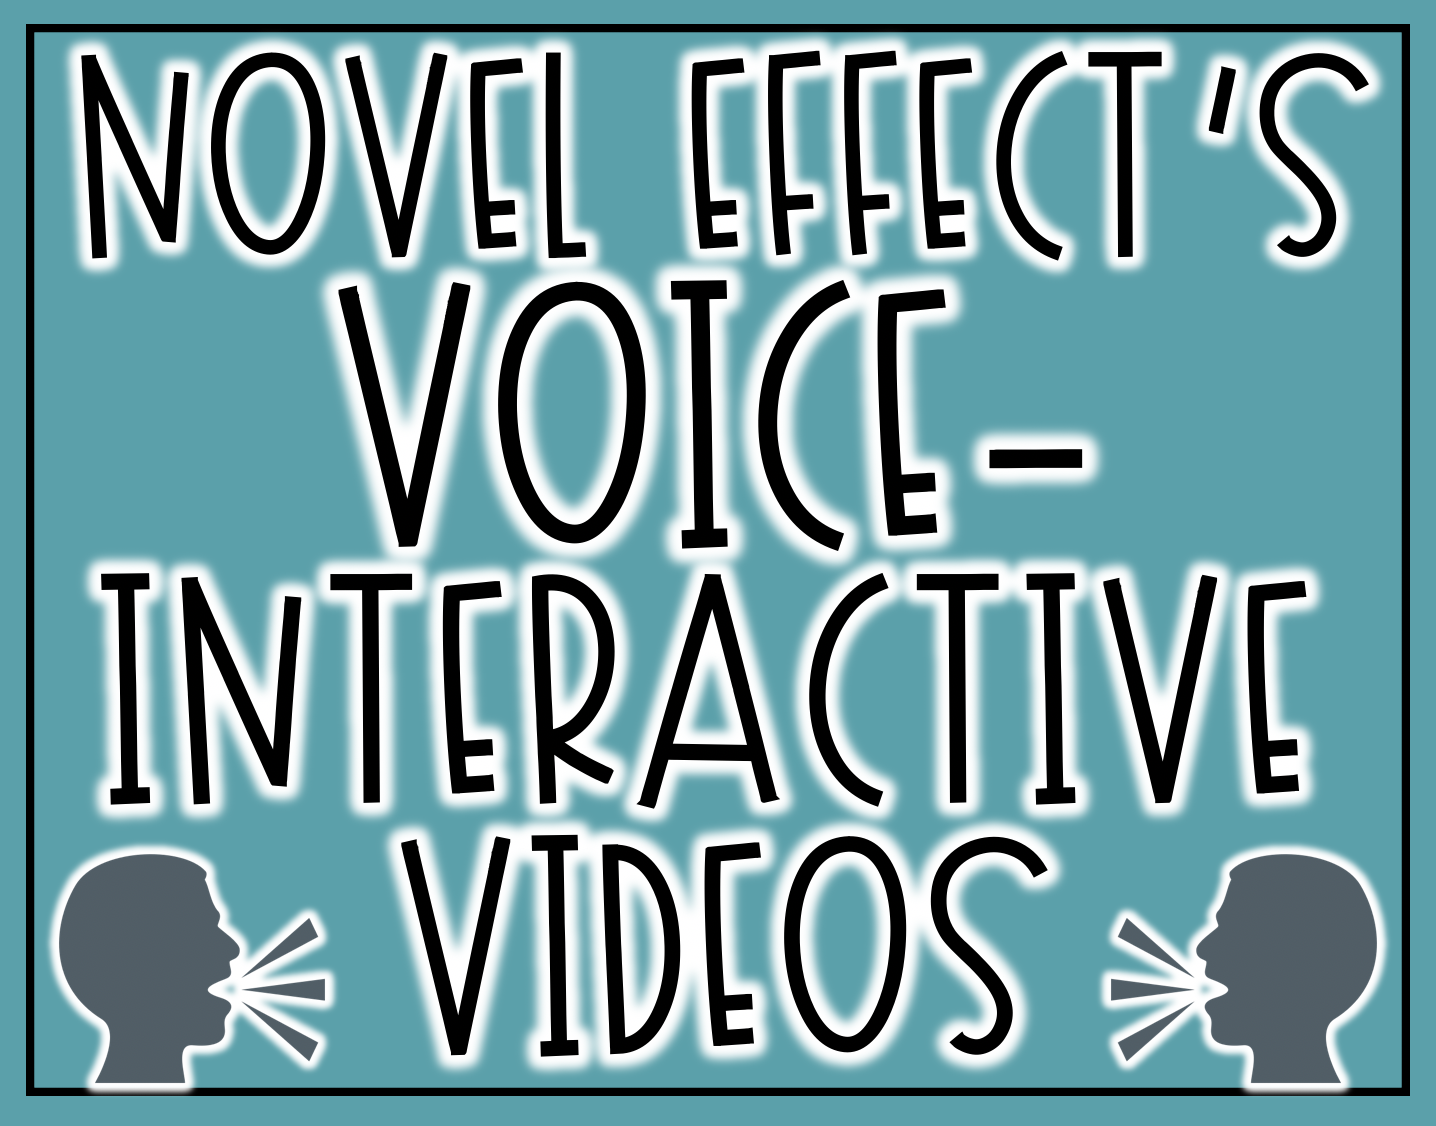 Novel Effect rolled out voice-interactive videos in which the user moves the video story forward as well as chooses what happens next by reading lines out loud when they appear on the screen. Novel Effect puts the user in control with the unique opportunity to play along with the characters and connect with the story, shaping it as they go!